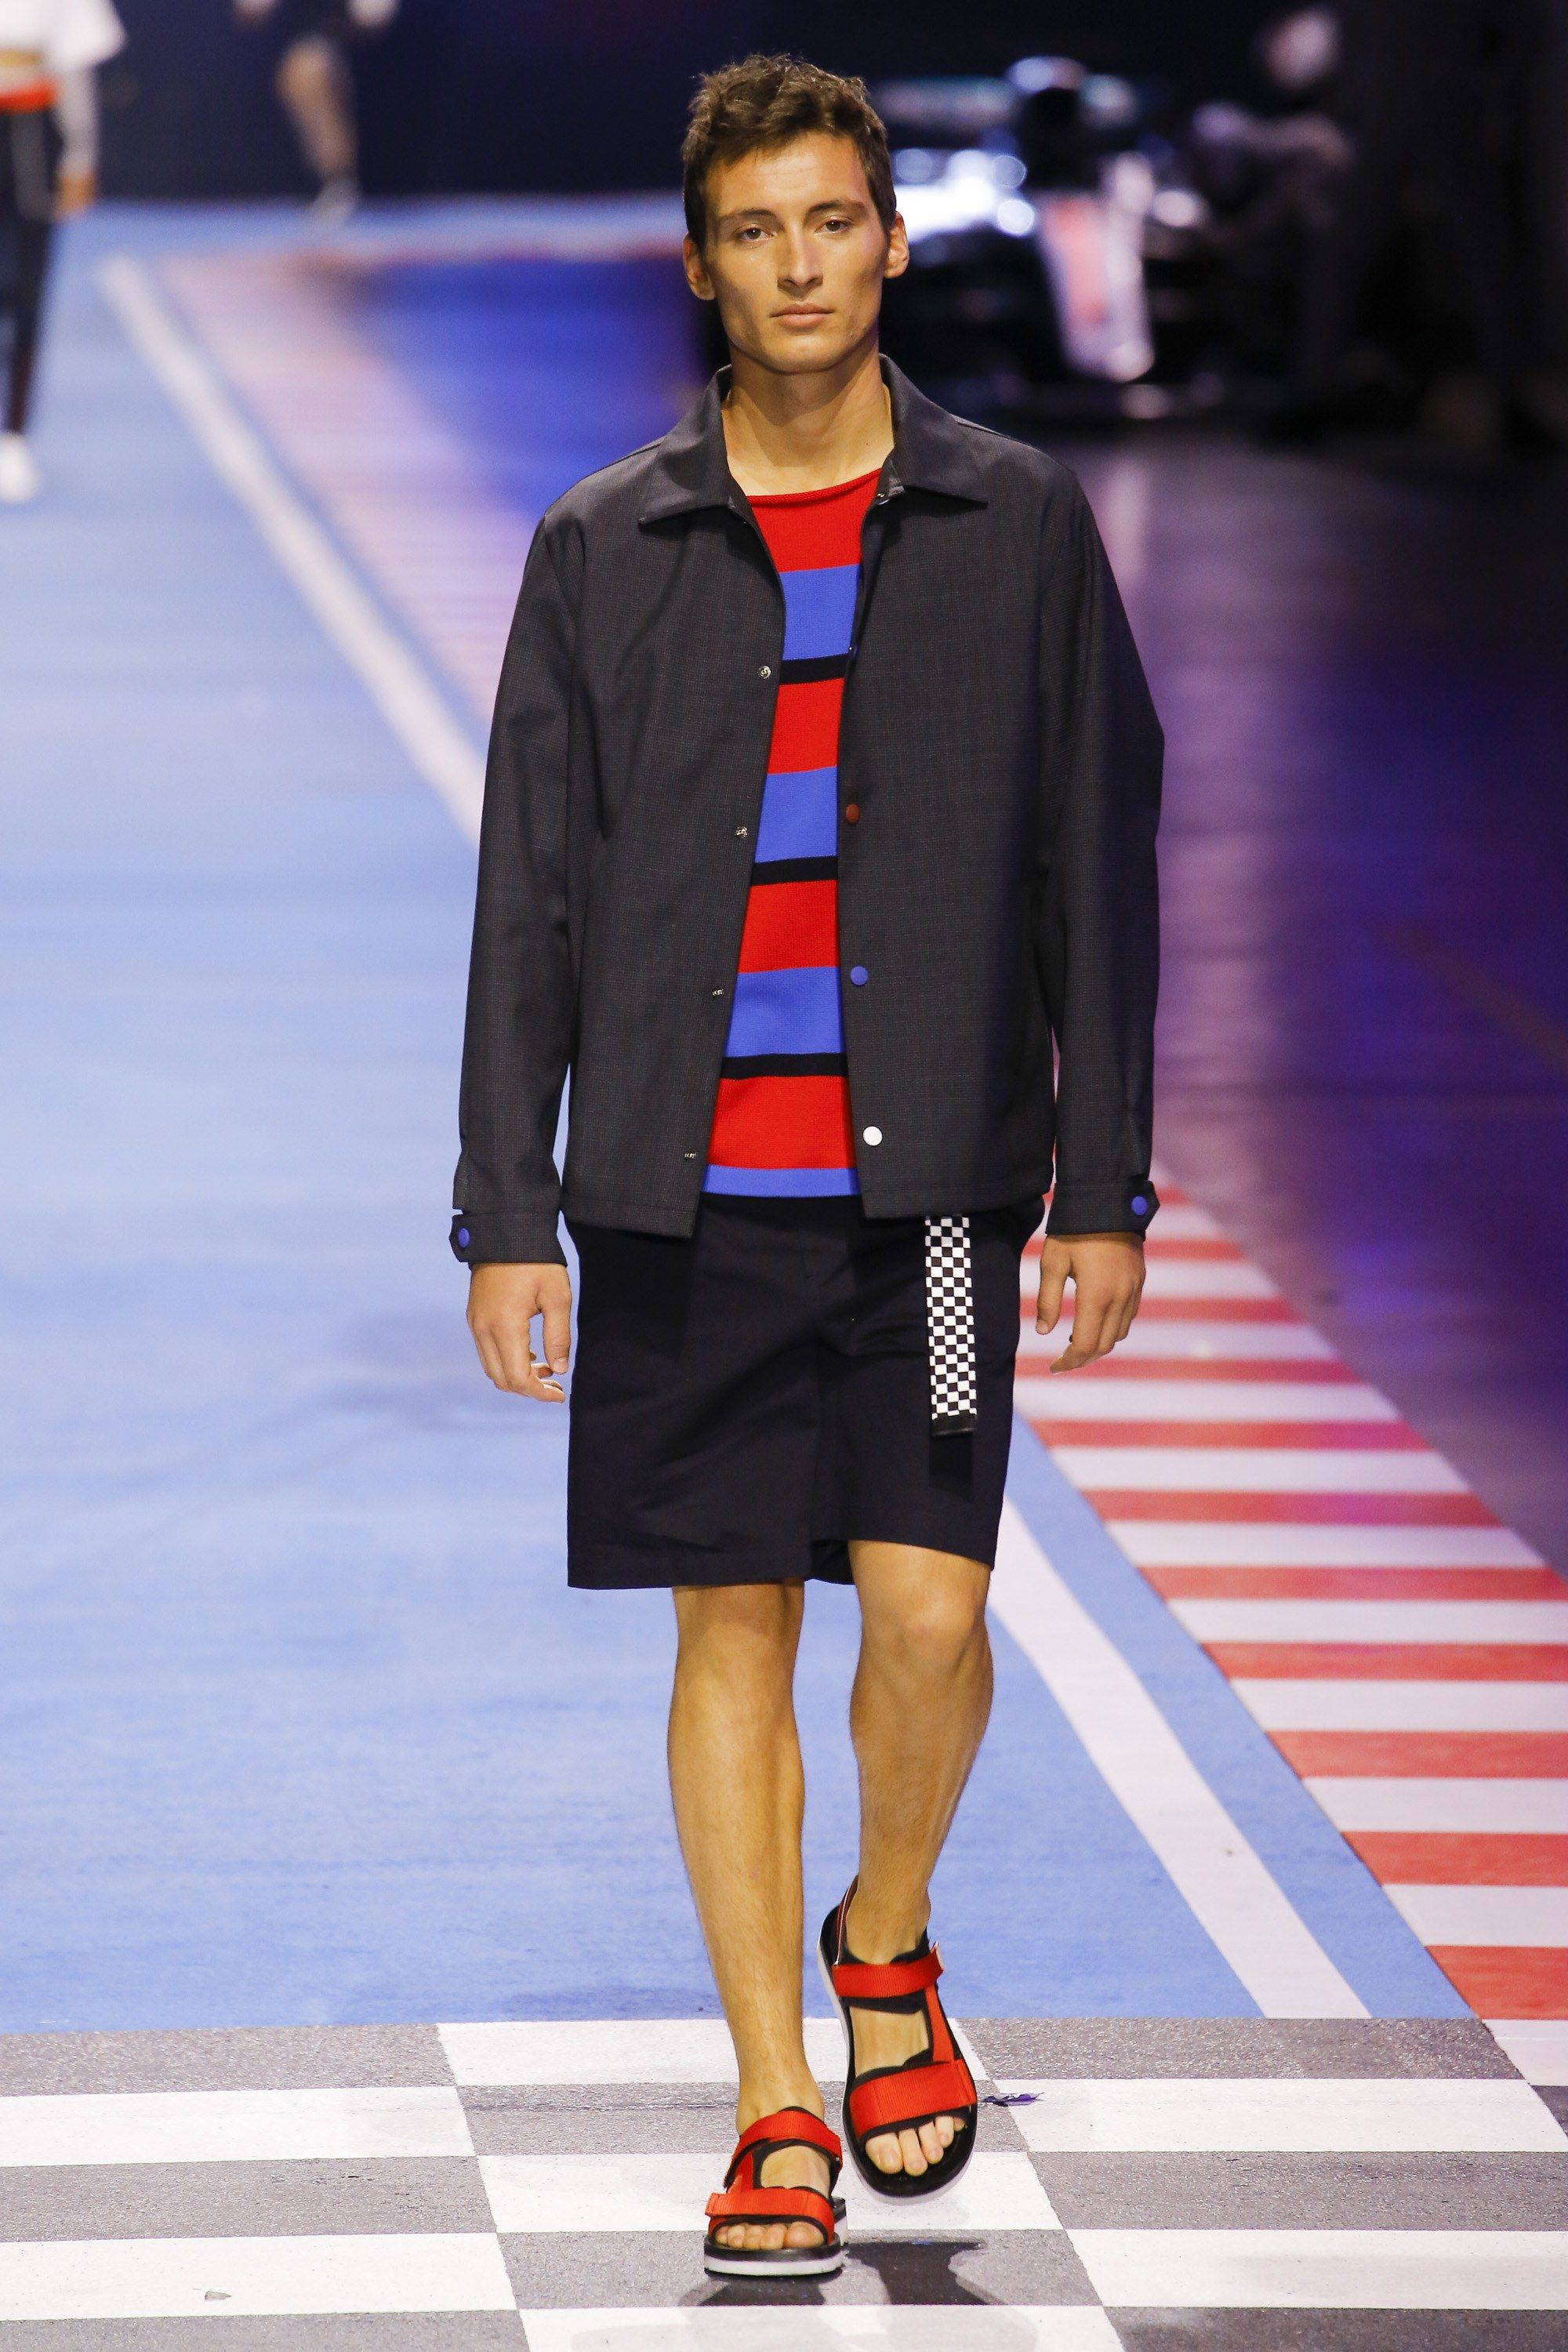 939dbc55 Tommy Hilfiger Spring 2018 Ready-to-Wear Fashion Show | Fashion and ...